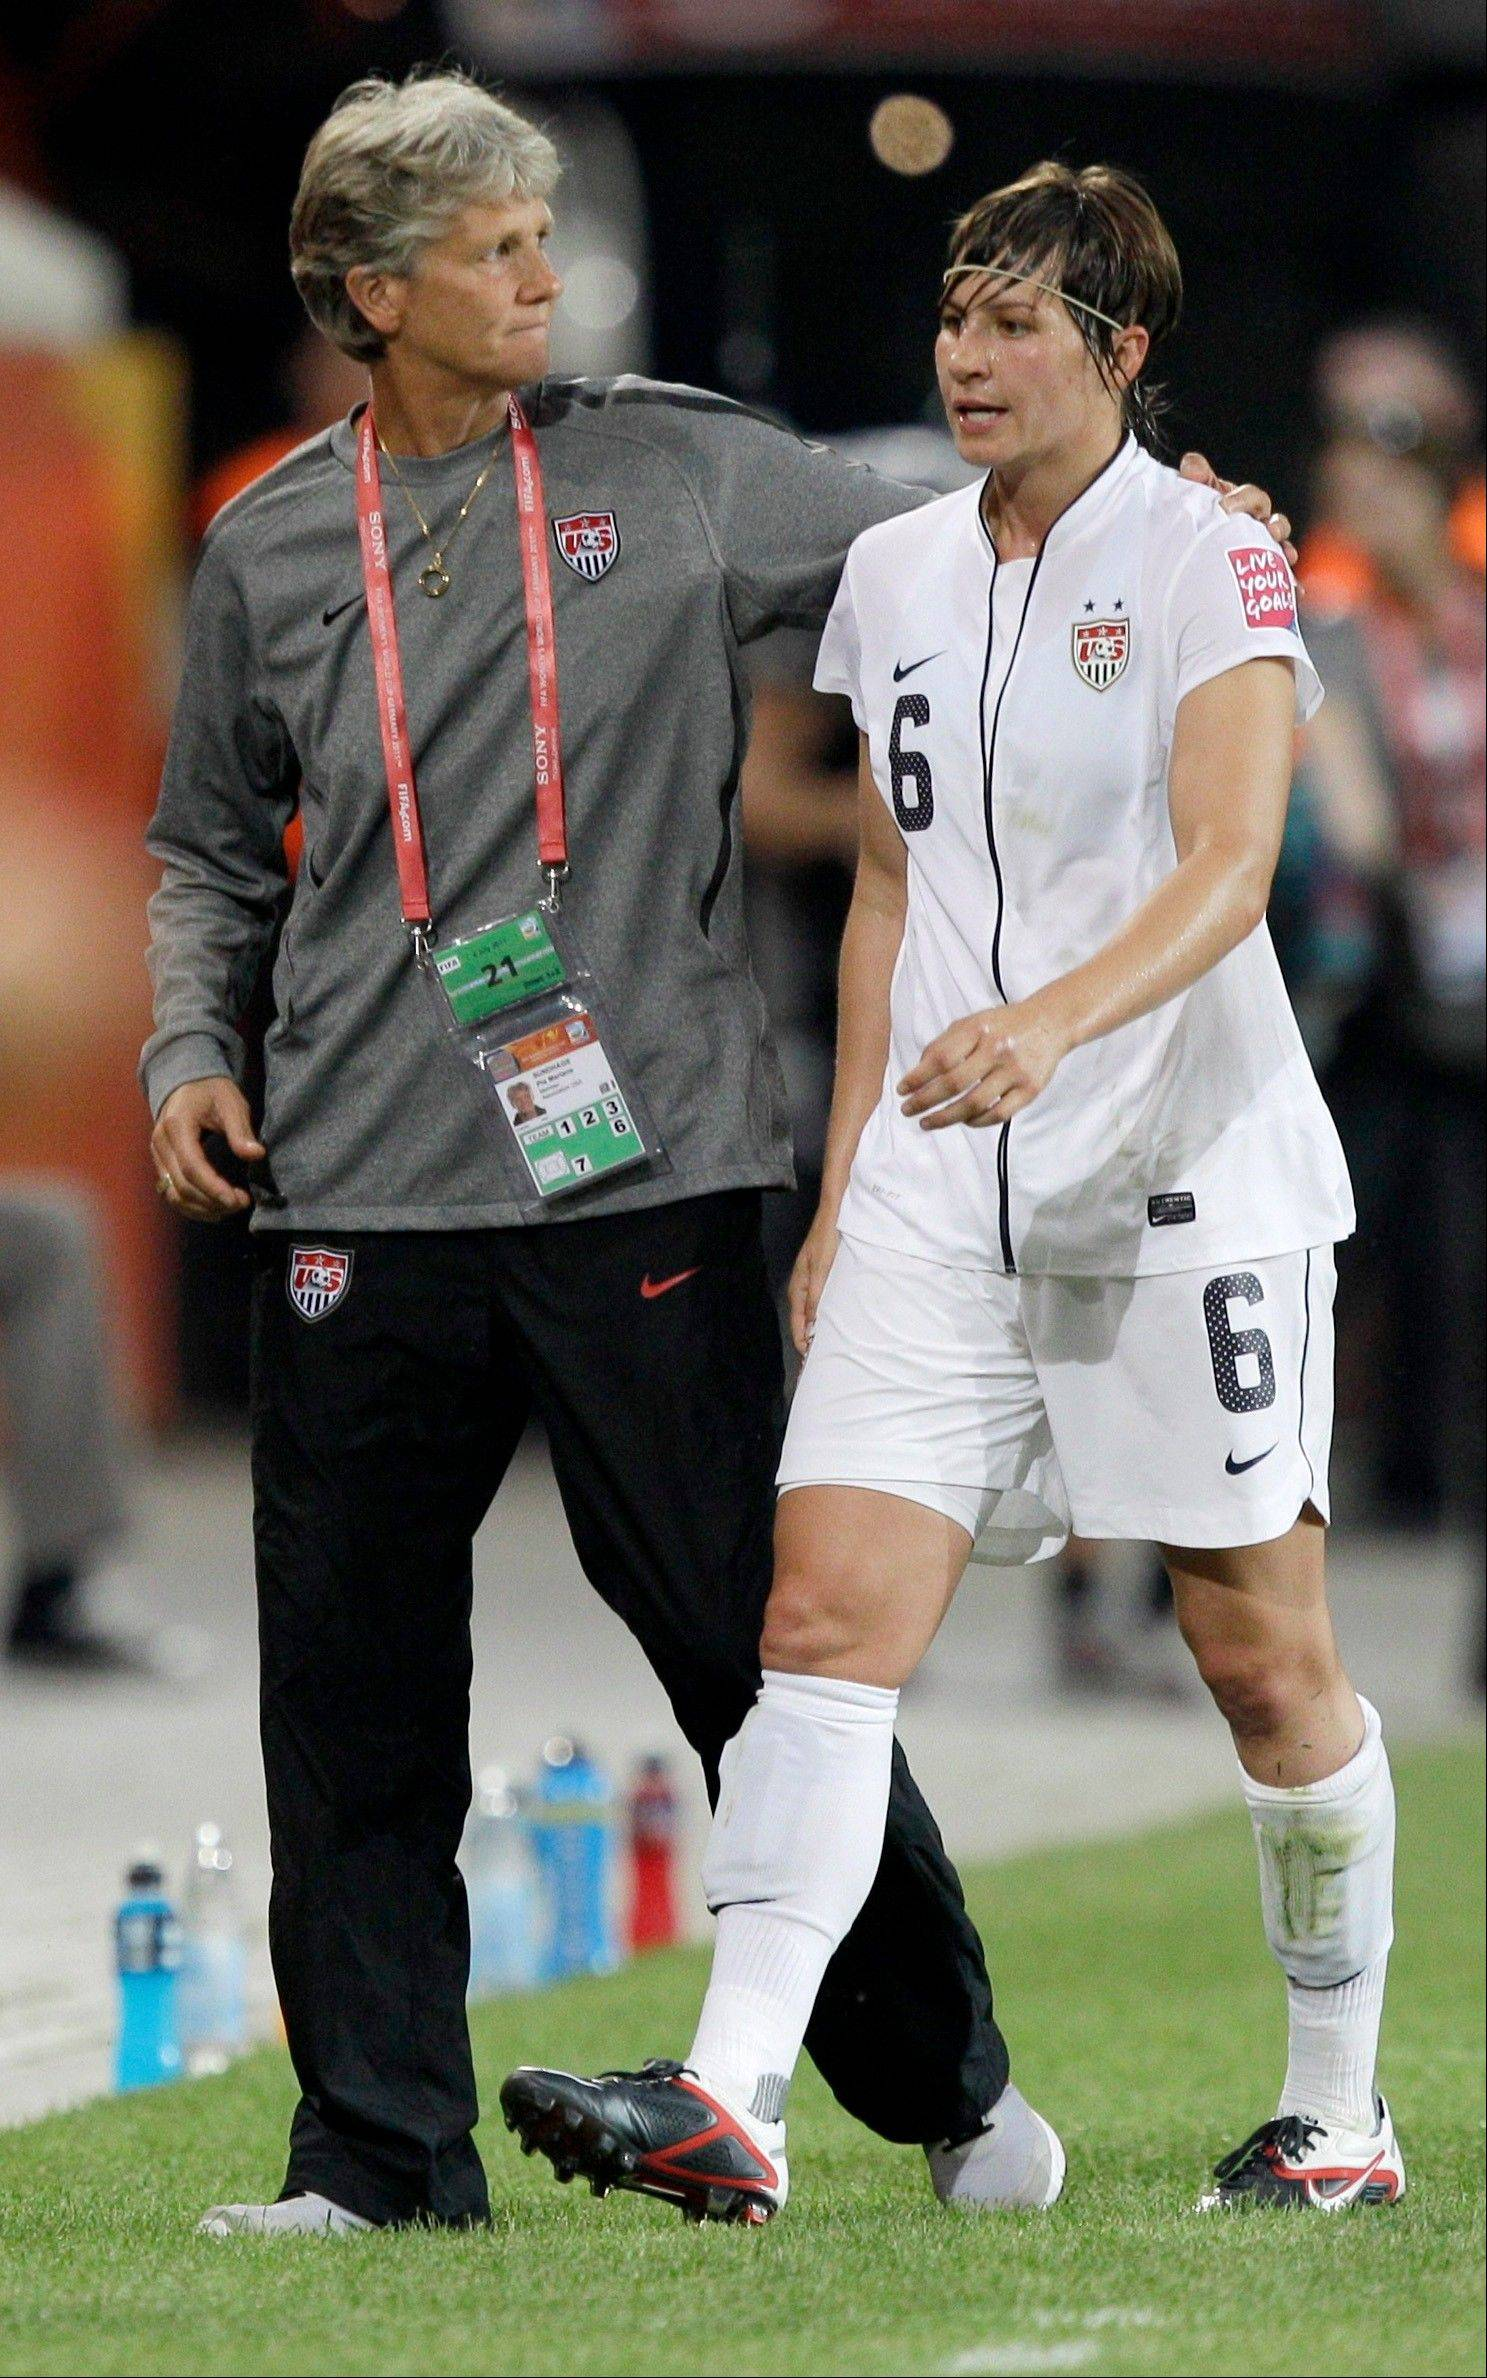 United States coach Pia Sundhage, pats Amy Le Peilbet after she was substituted during Wednesday's Group C match between Sweden and the United States. Sweden won 2-1 to win the group.